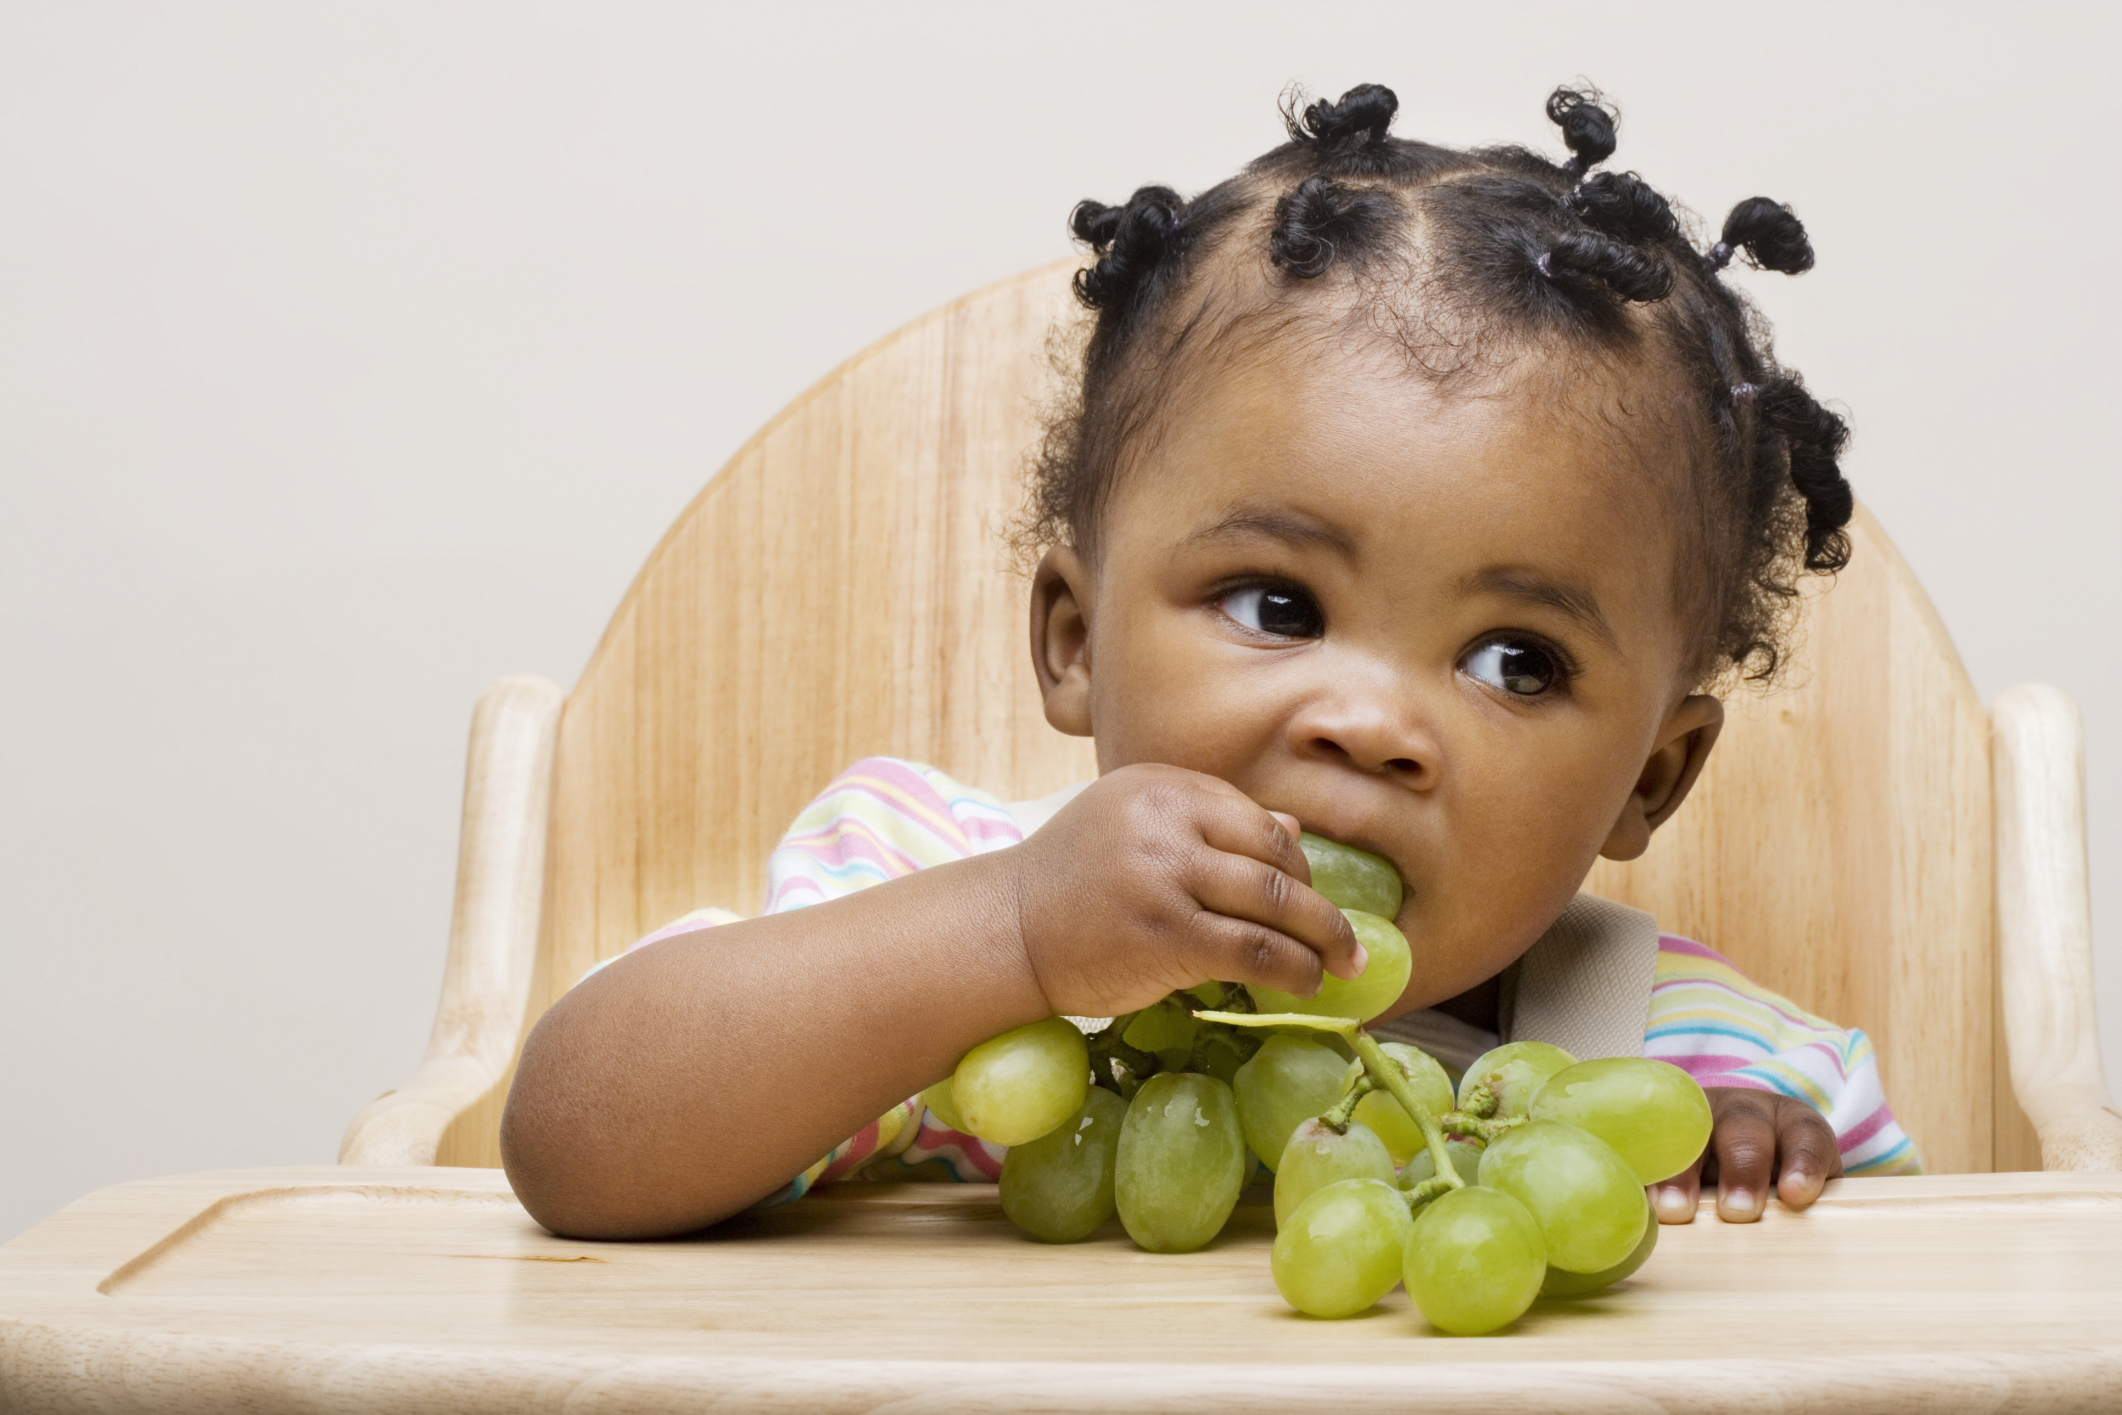 Tips for cutting grapes for baby